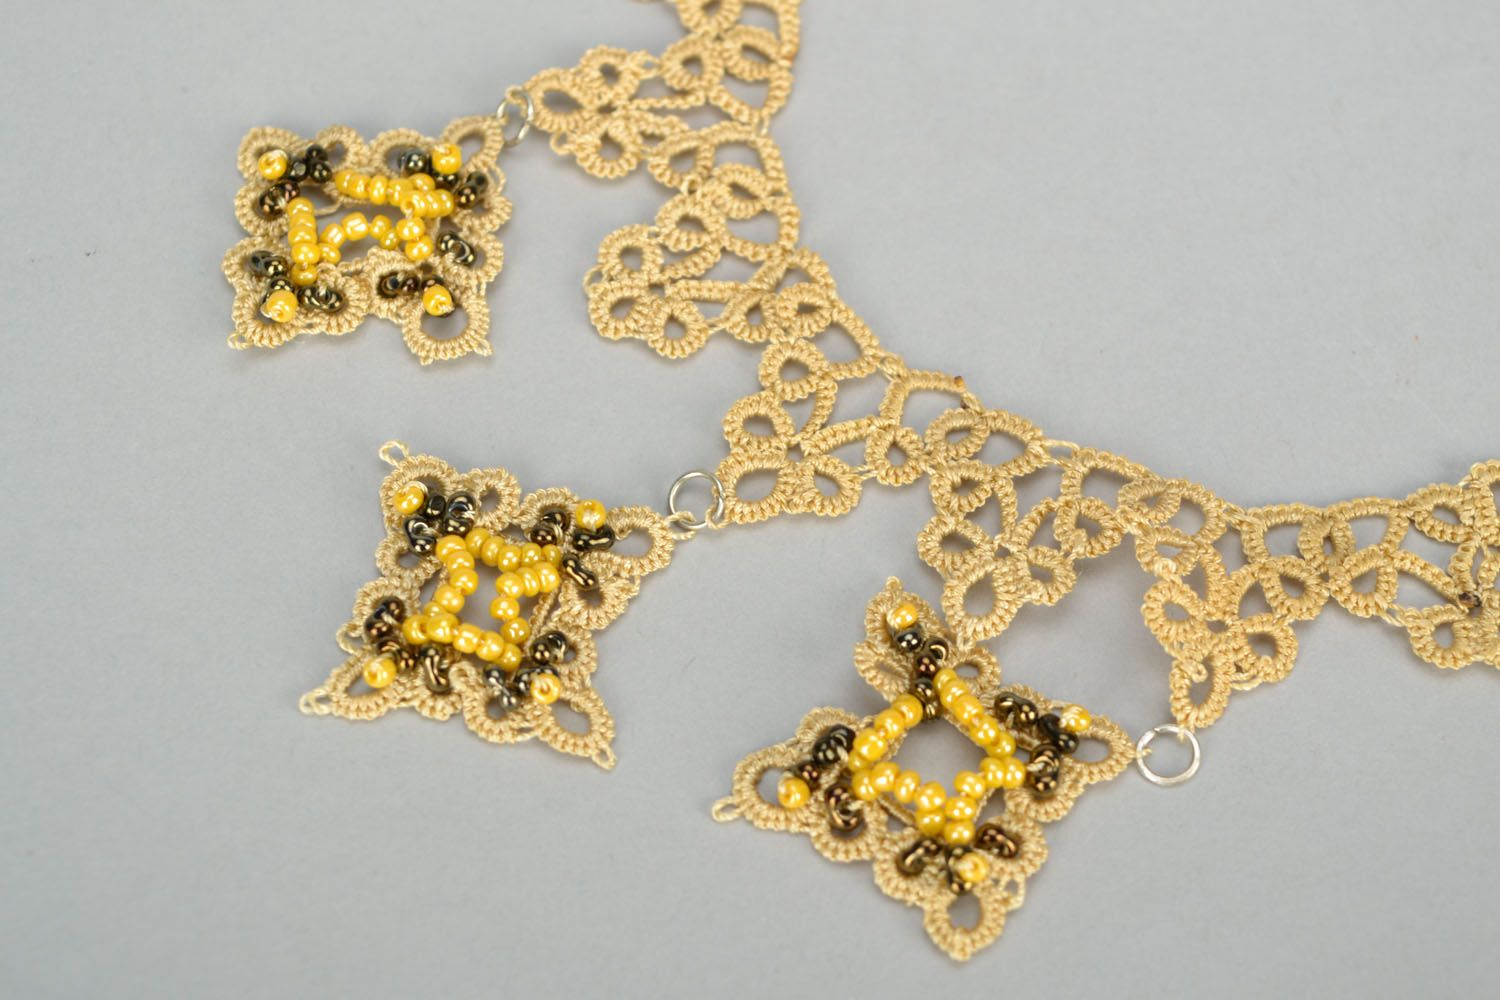 Homemade tatting necklace photo 2